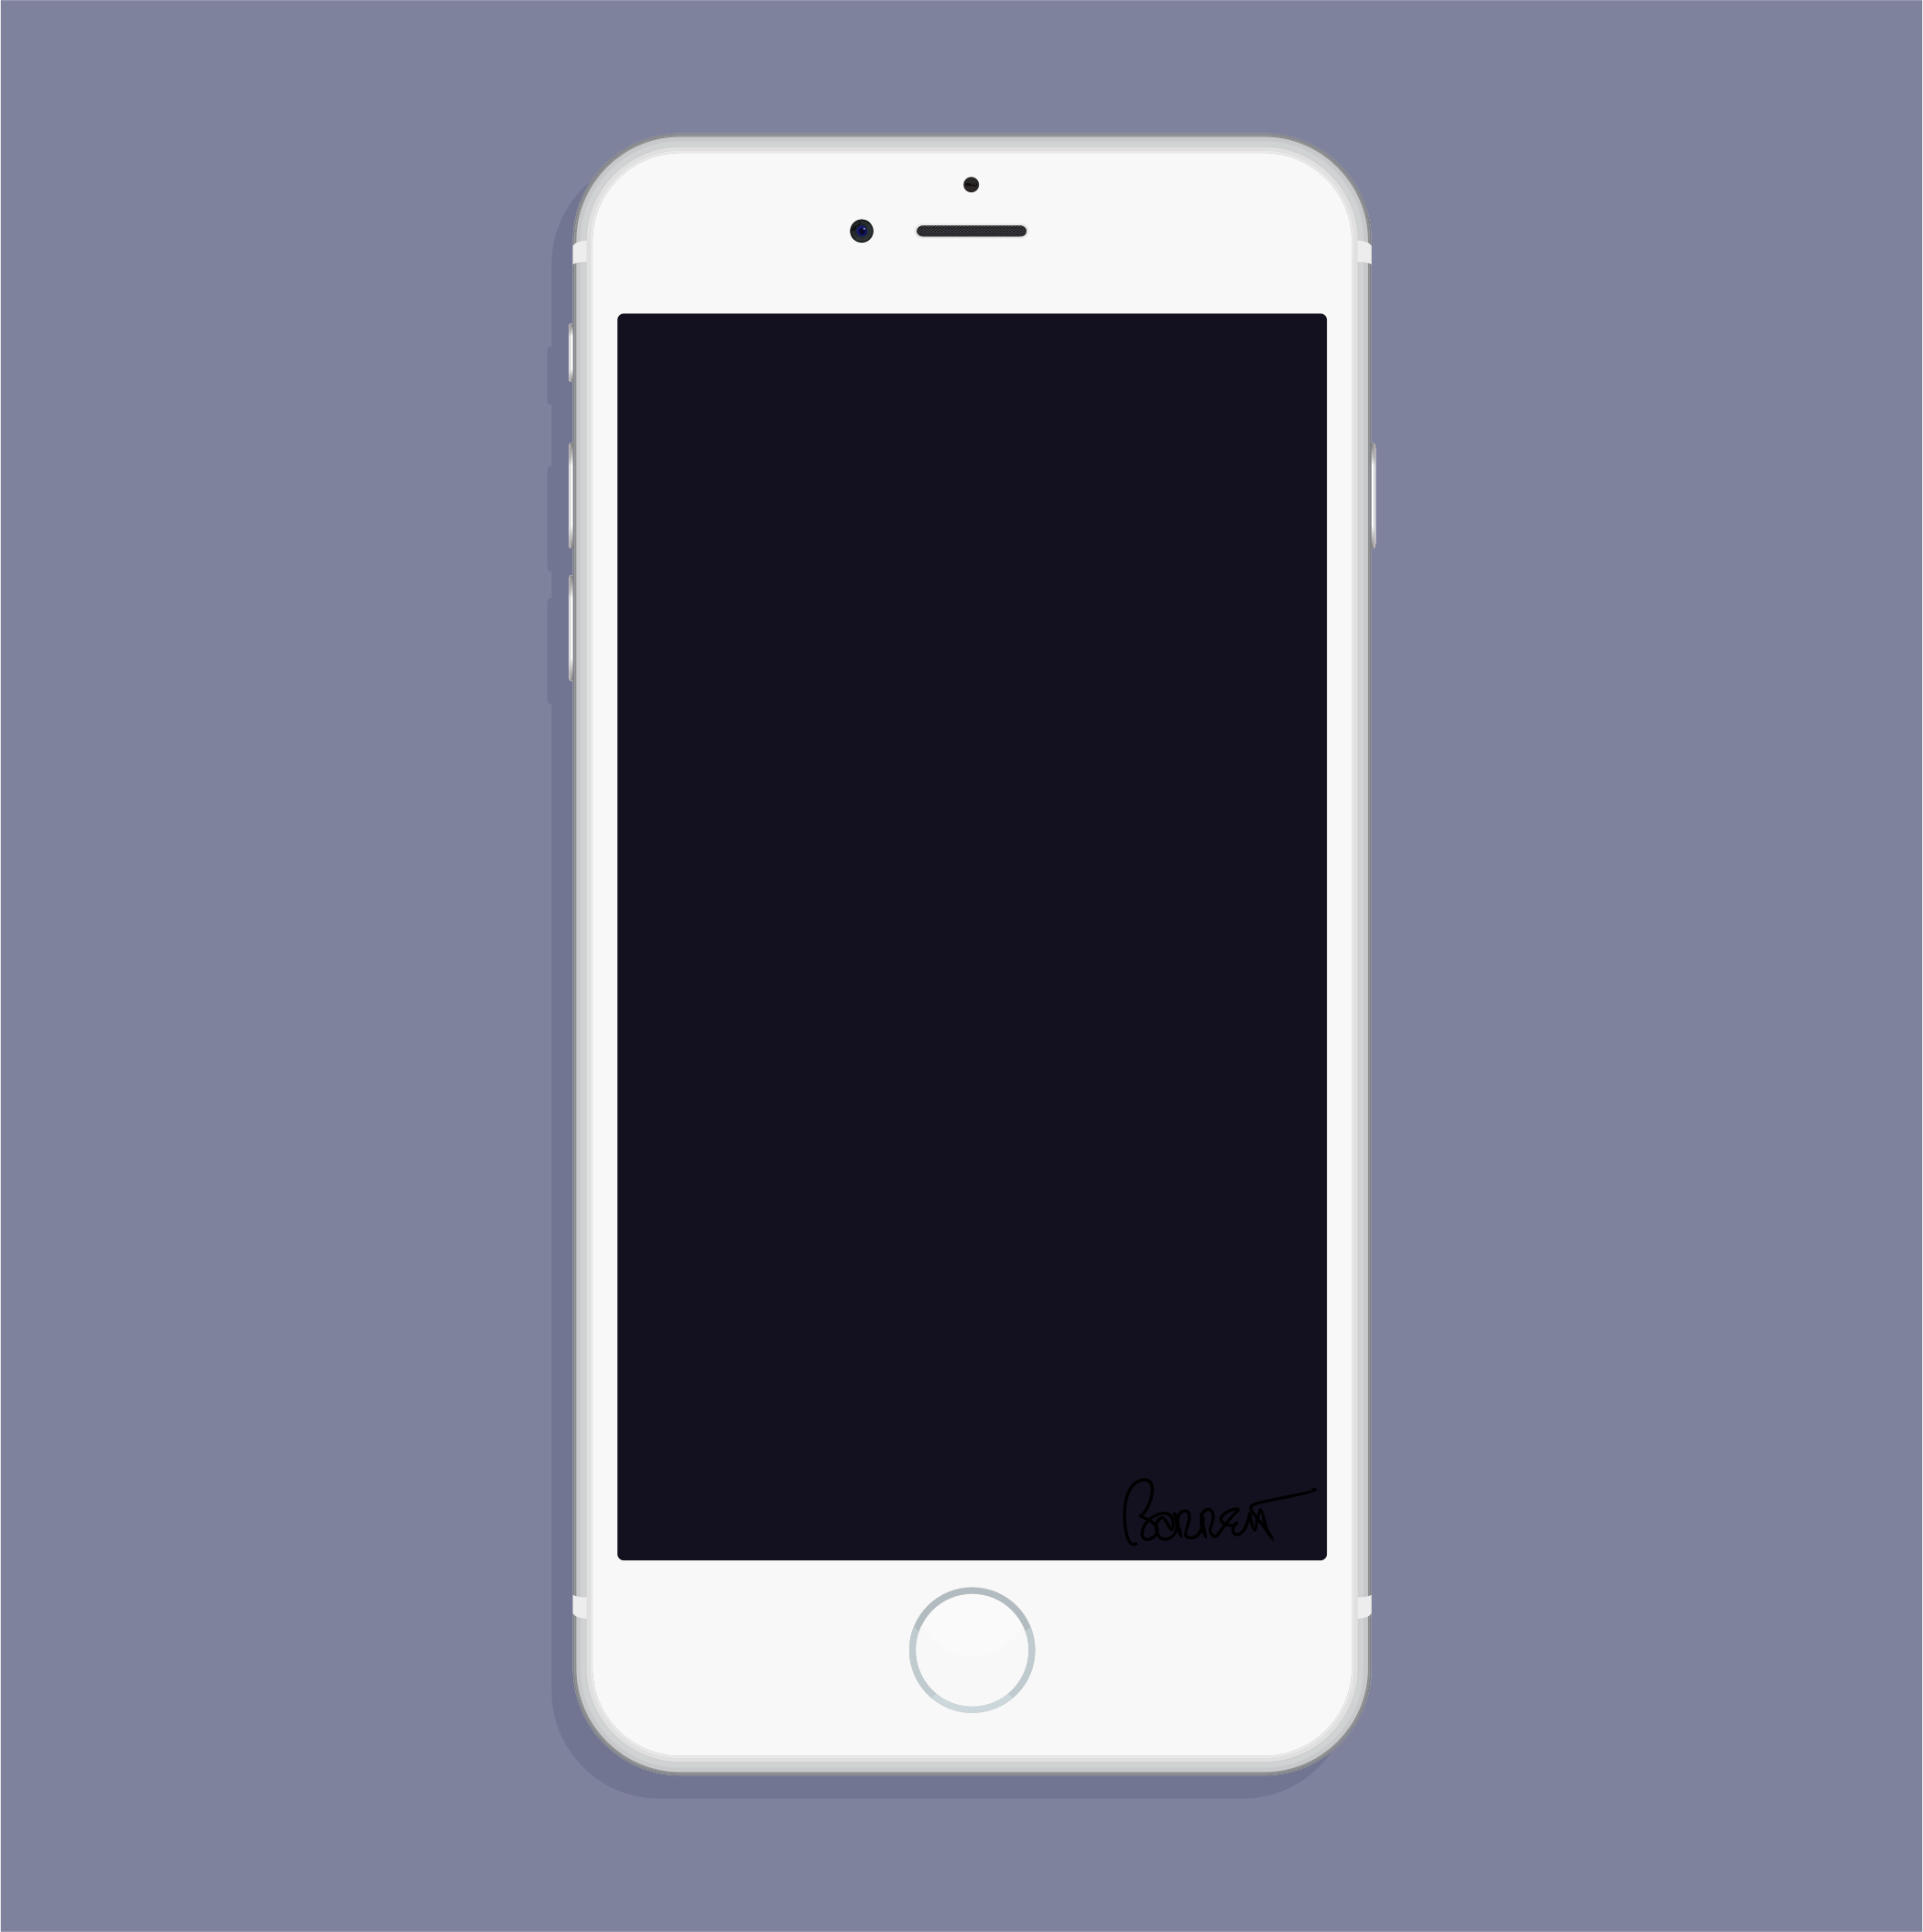 Clipart iphone 6 picture transparent stock Clipart iphone 6 - ClipartFest picture transparent stock